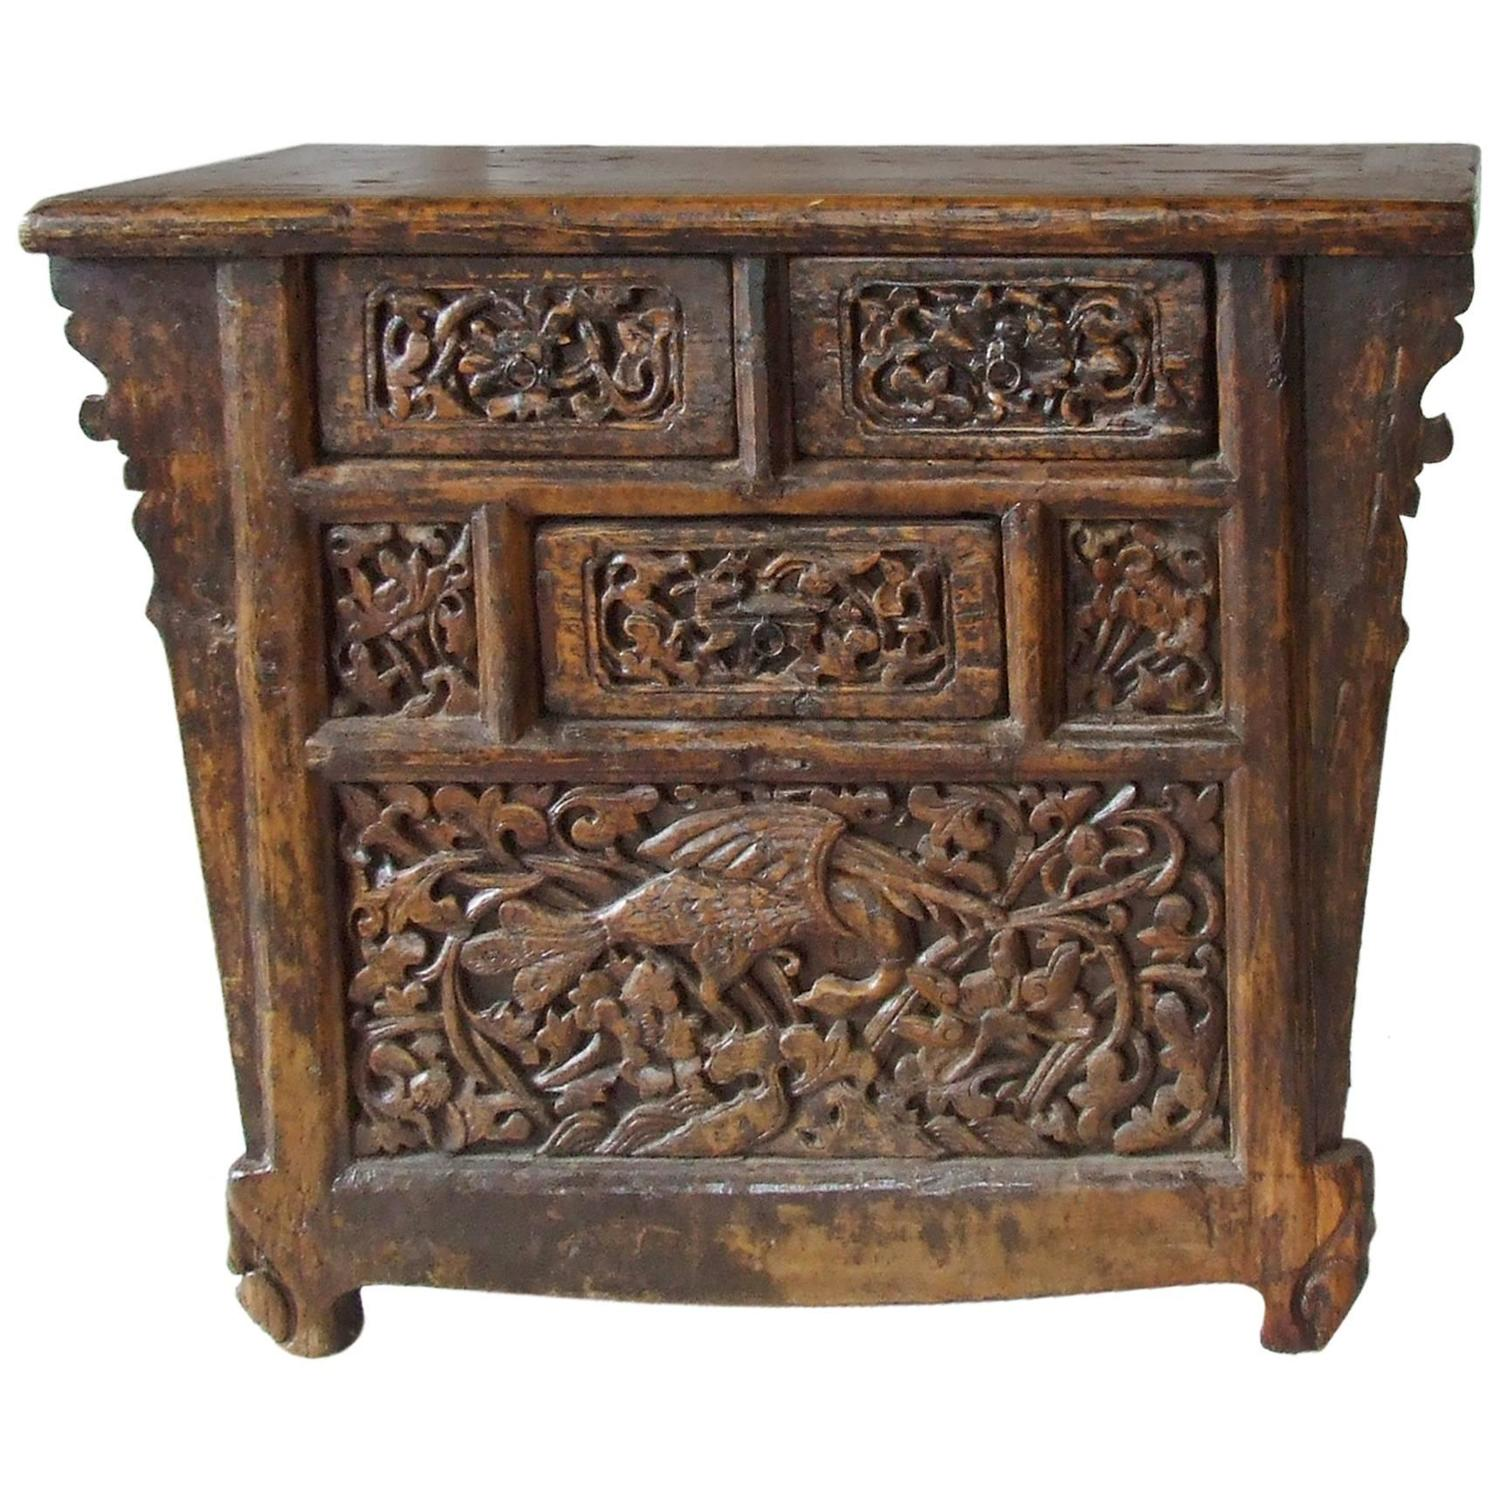 Antique Asian Furniture 1 851 For Sale at 1stdibs